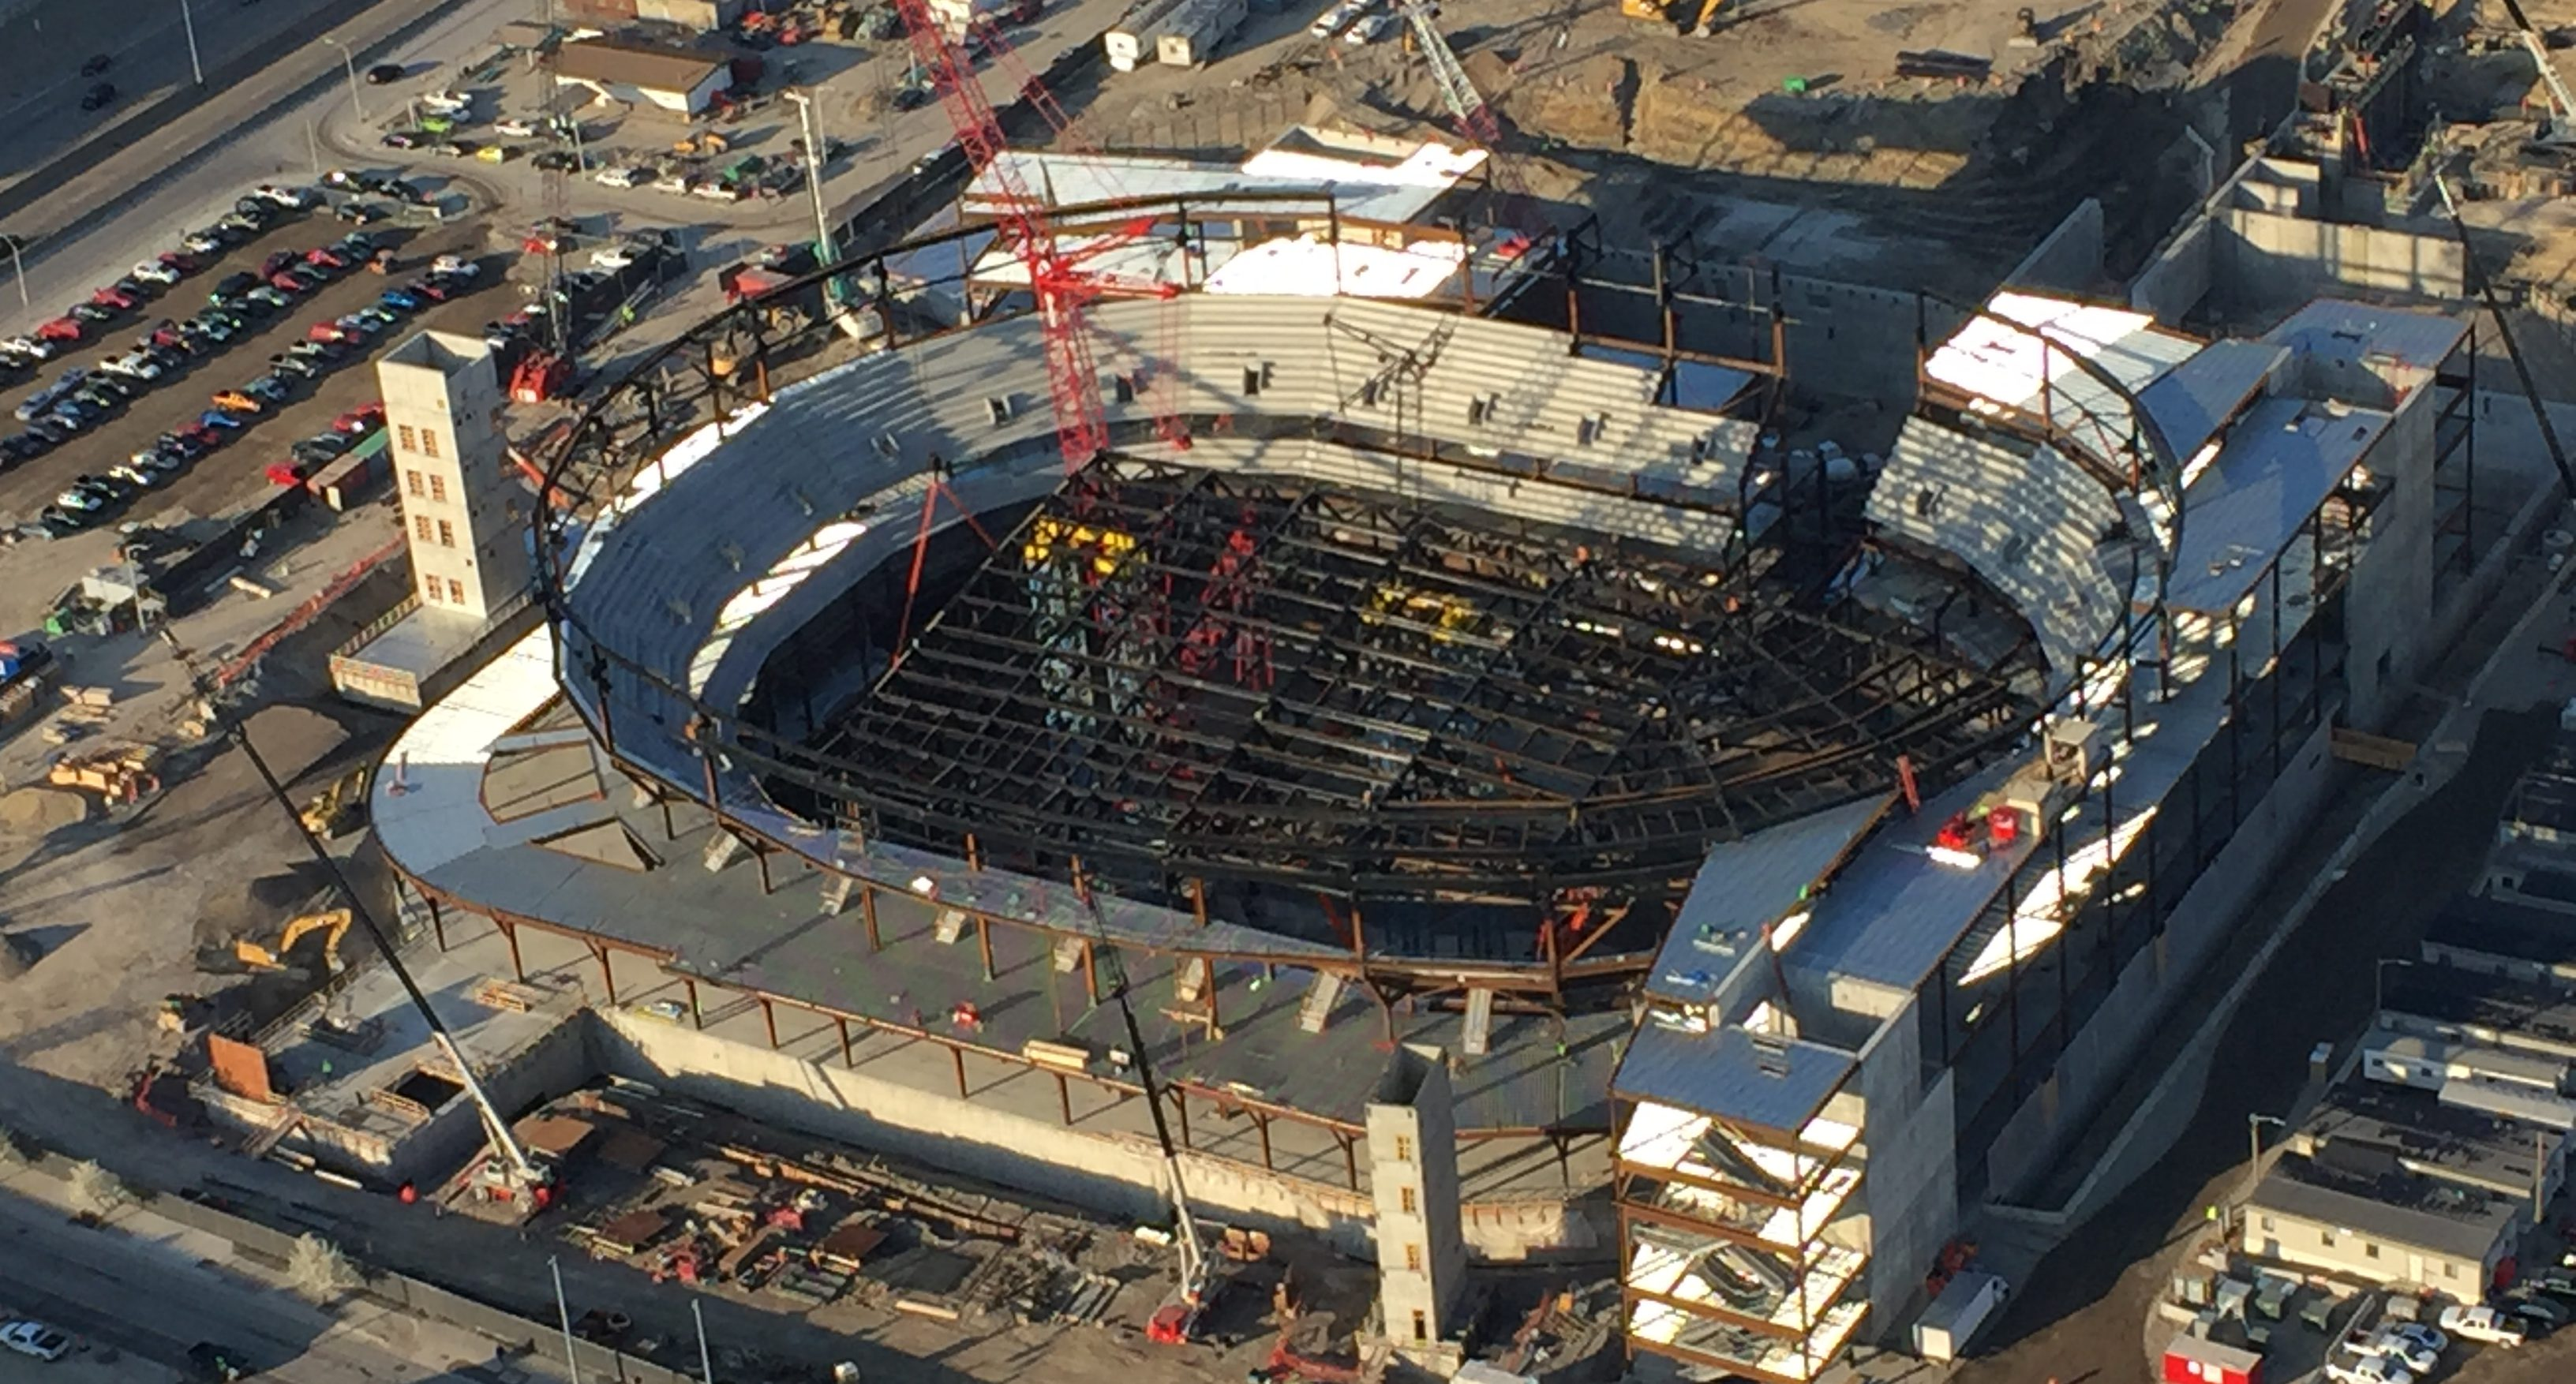 Work continues on the new Red Wings arena in downtown Detroit. (credit: Bill Szumanski/WWJ)